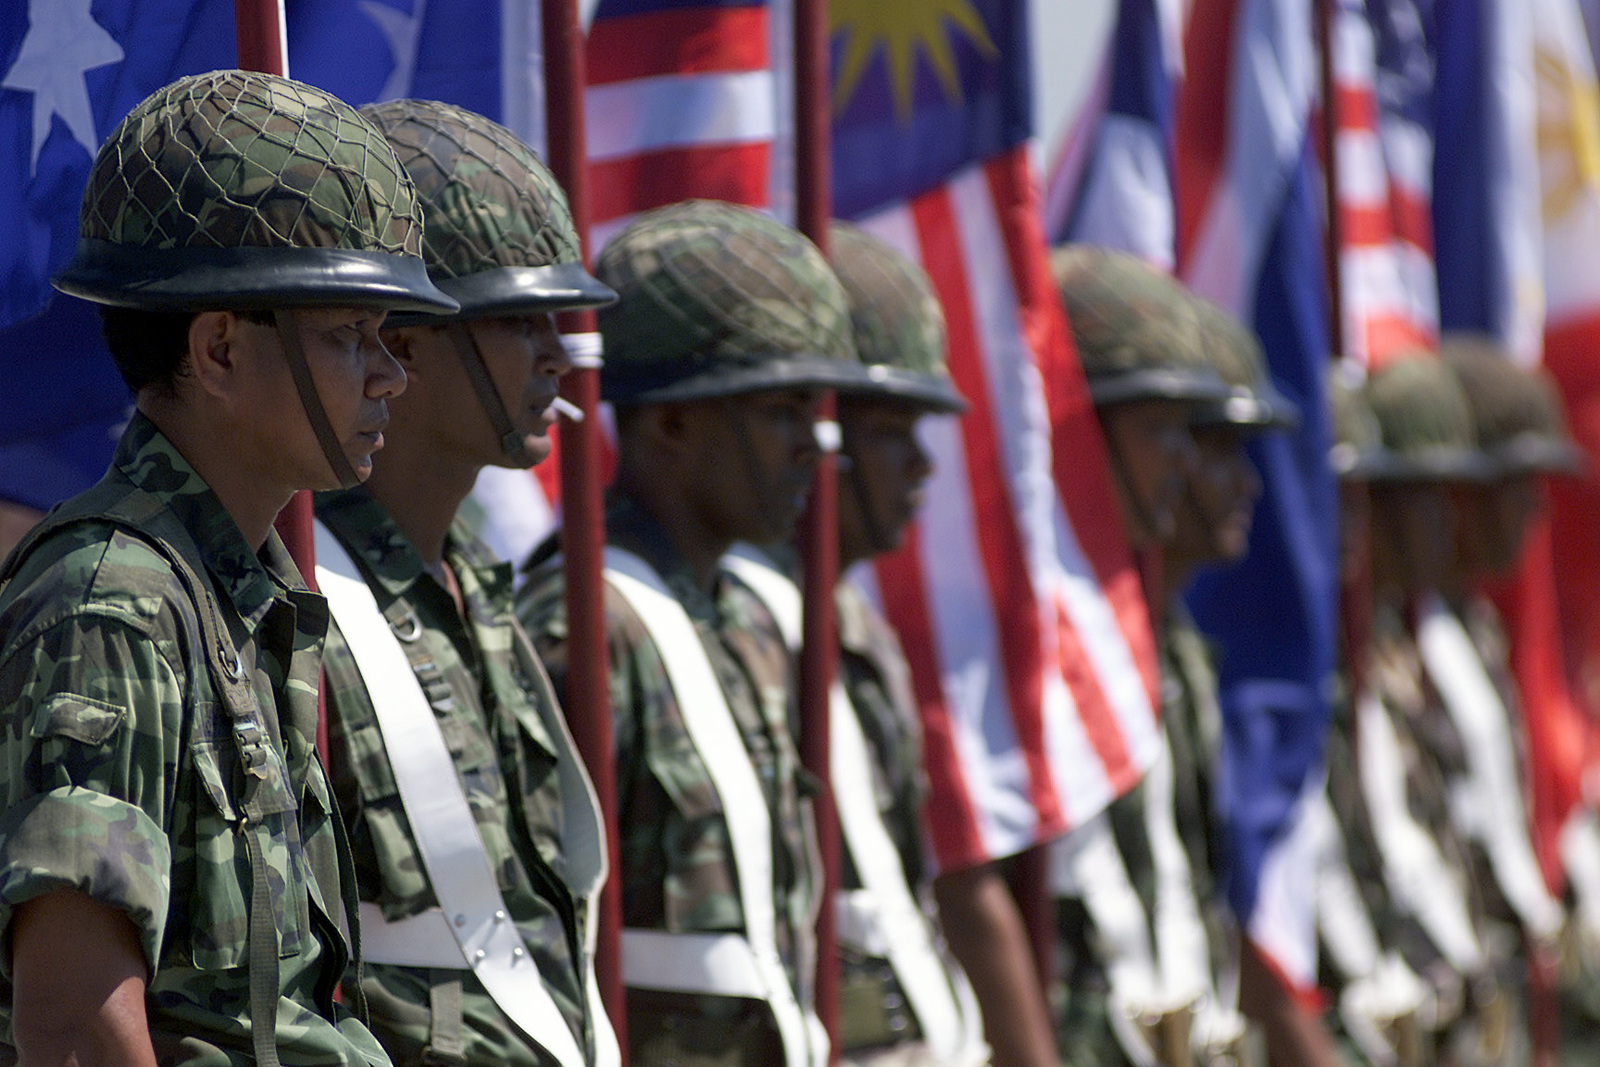 Members of the Royal Thai Army Color Guard stand at attention during the Opening Ceremony for Exercise COBRA GOLD 2000 held at Vajira Military Camp, Nakhon Si Thammarat, Thailand